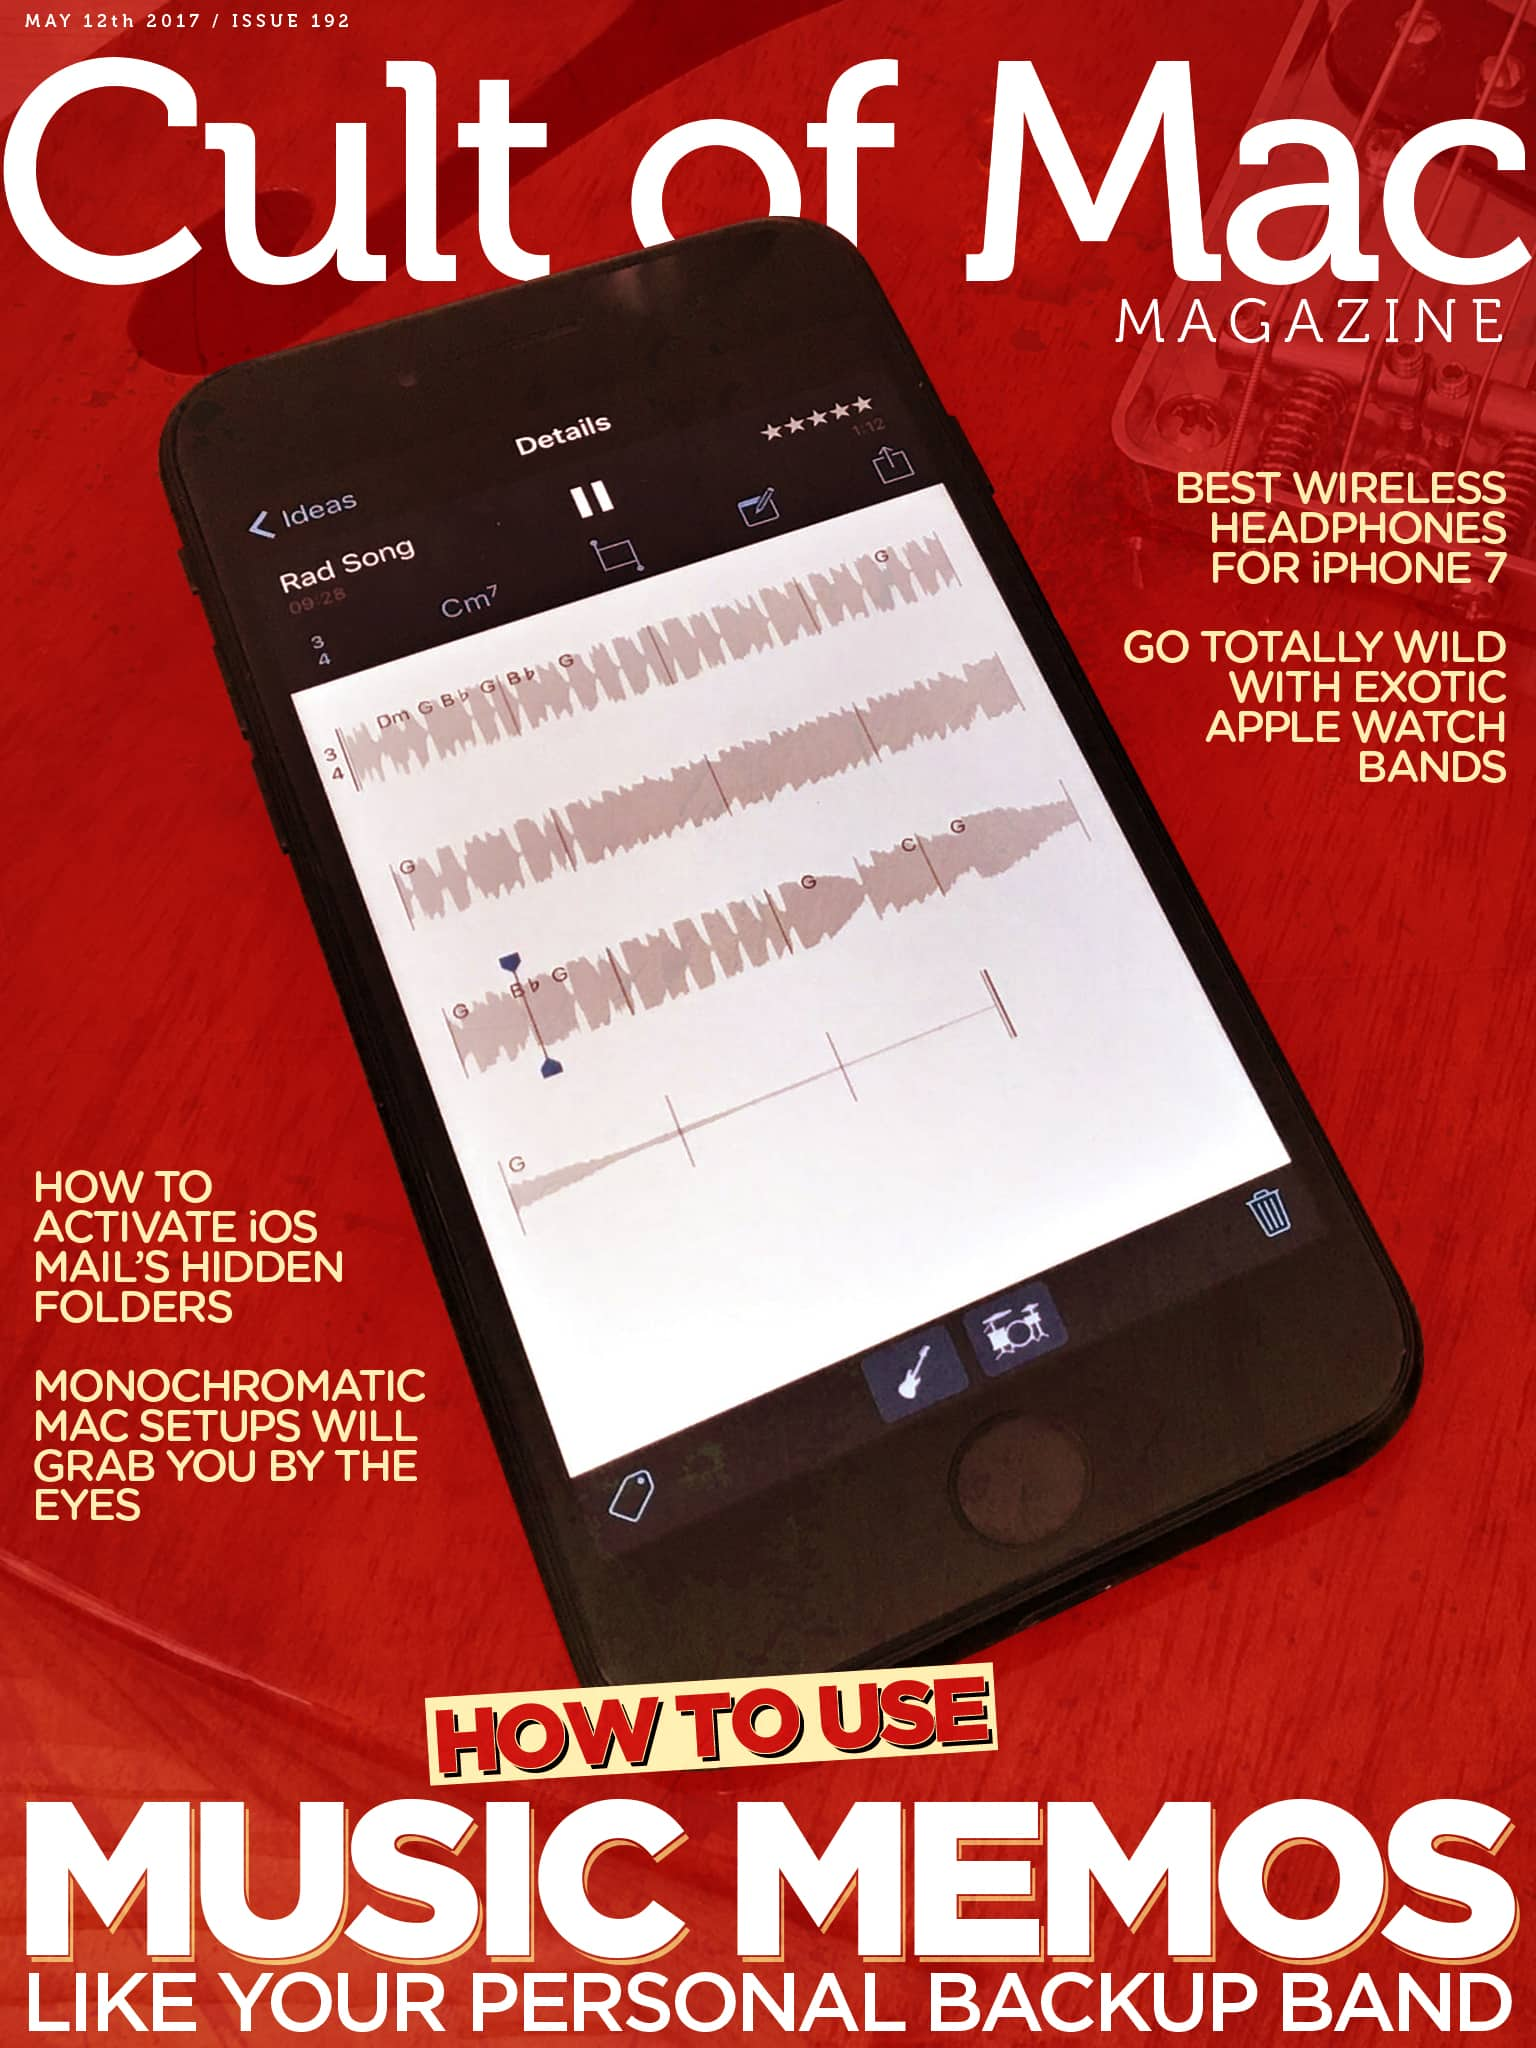 Your weekend reading is here! Check out Cult of Mac Magazine's latest issue for all the latest on Music Memos, screaming deals, monochromatic Mac setups, and more.